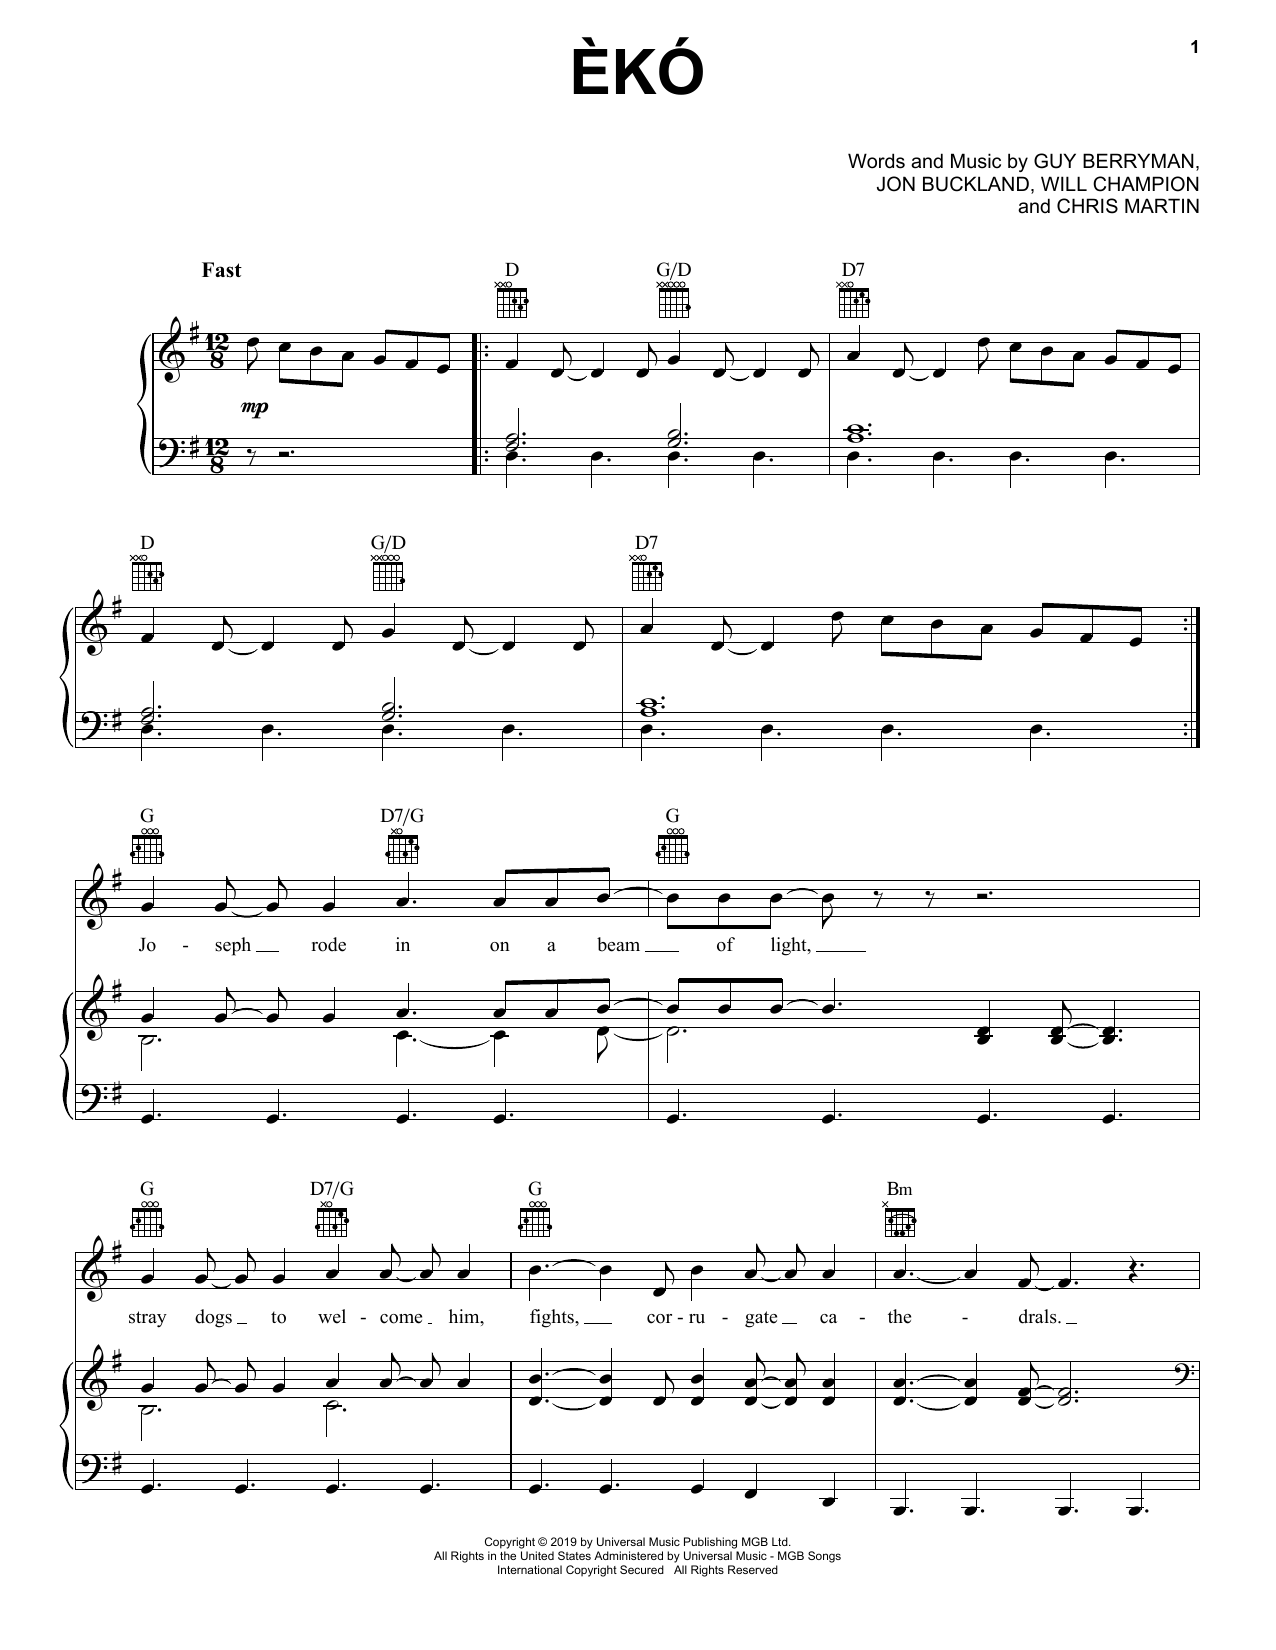 Guitar Tab Sheet Music Artist So Updated version Little Black Book of Coldplay